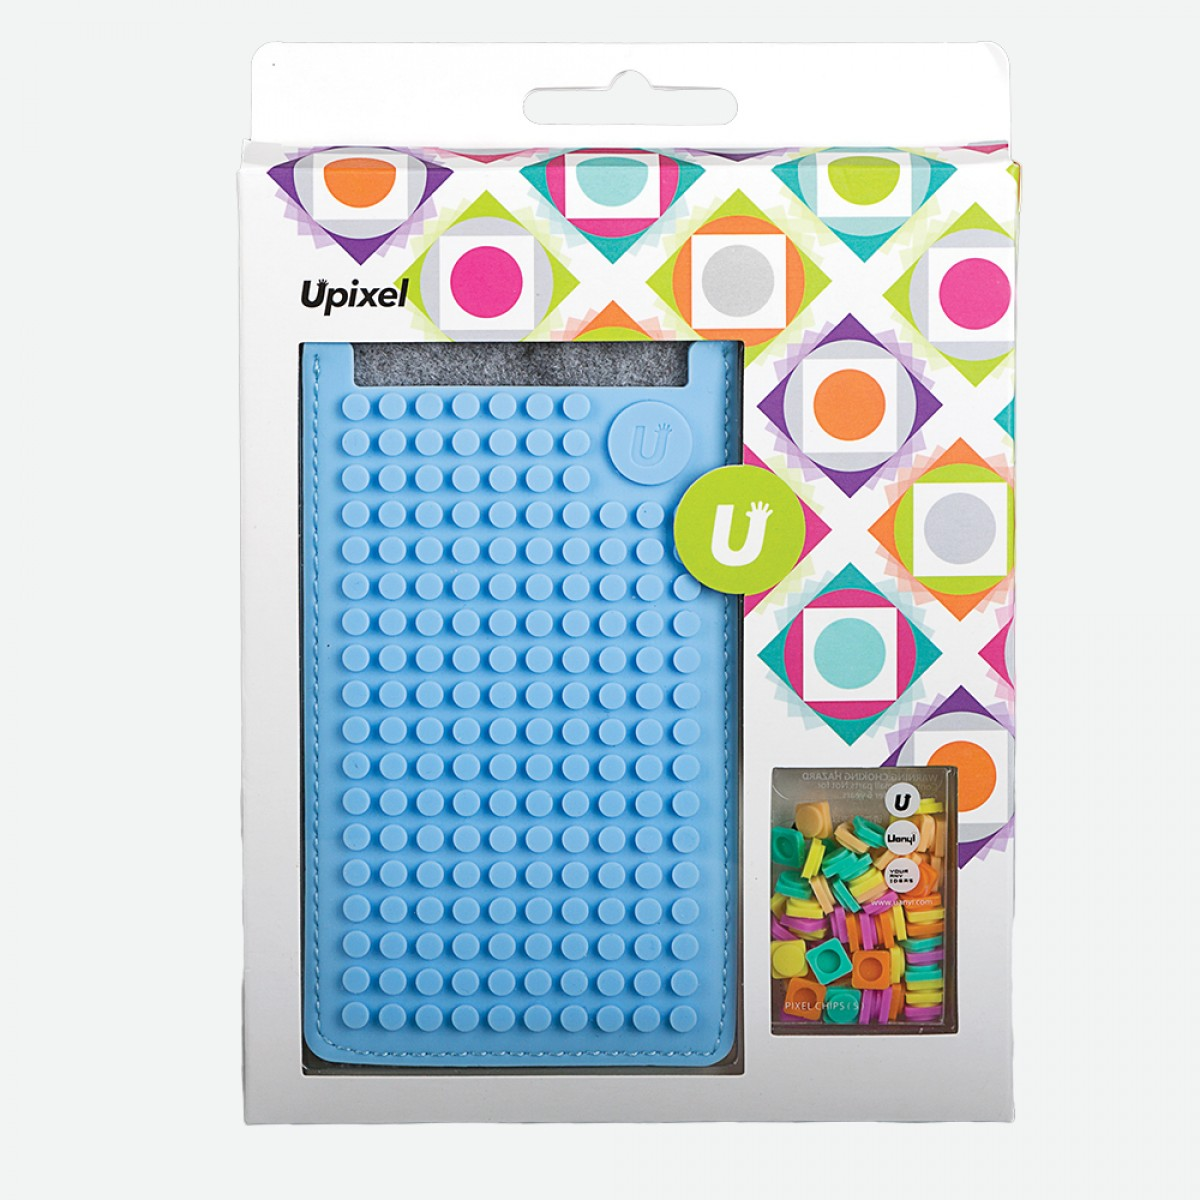 UPixel Pixel Phone Case Small - Green